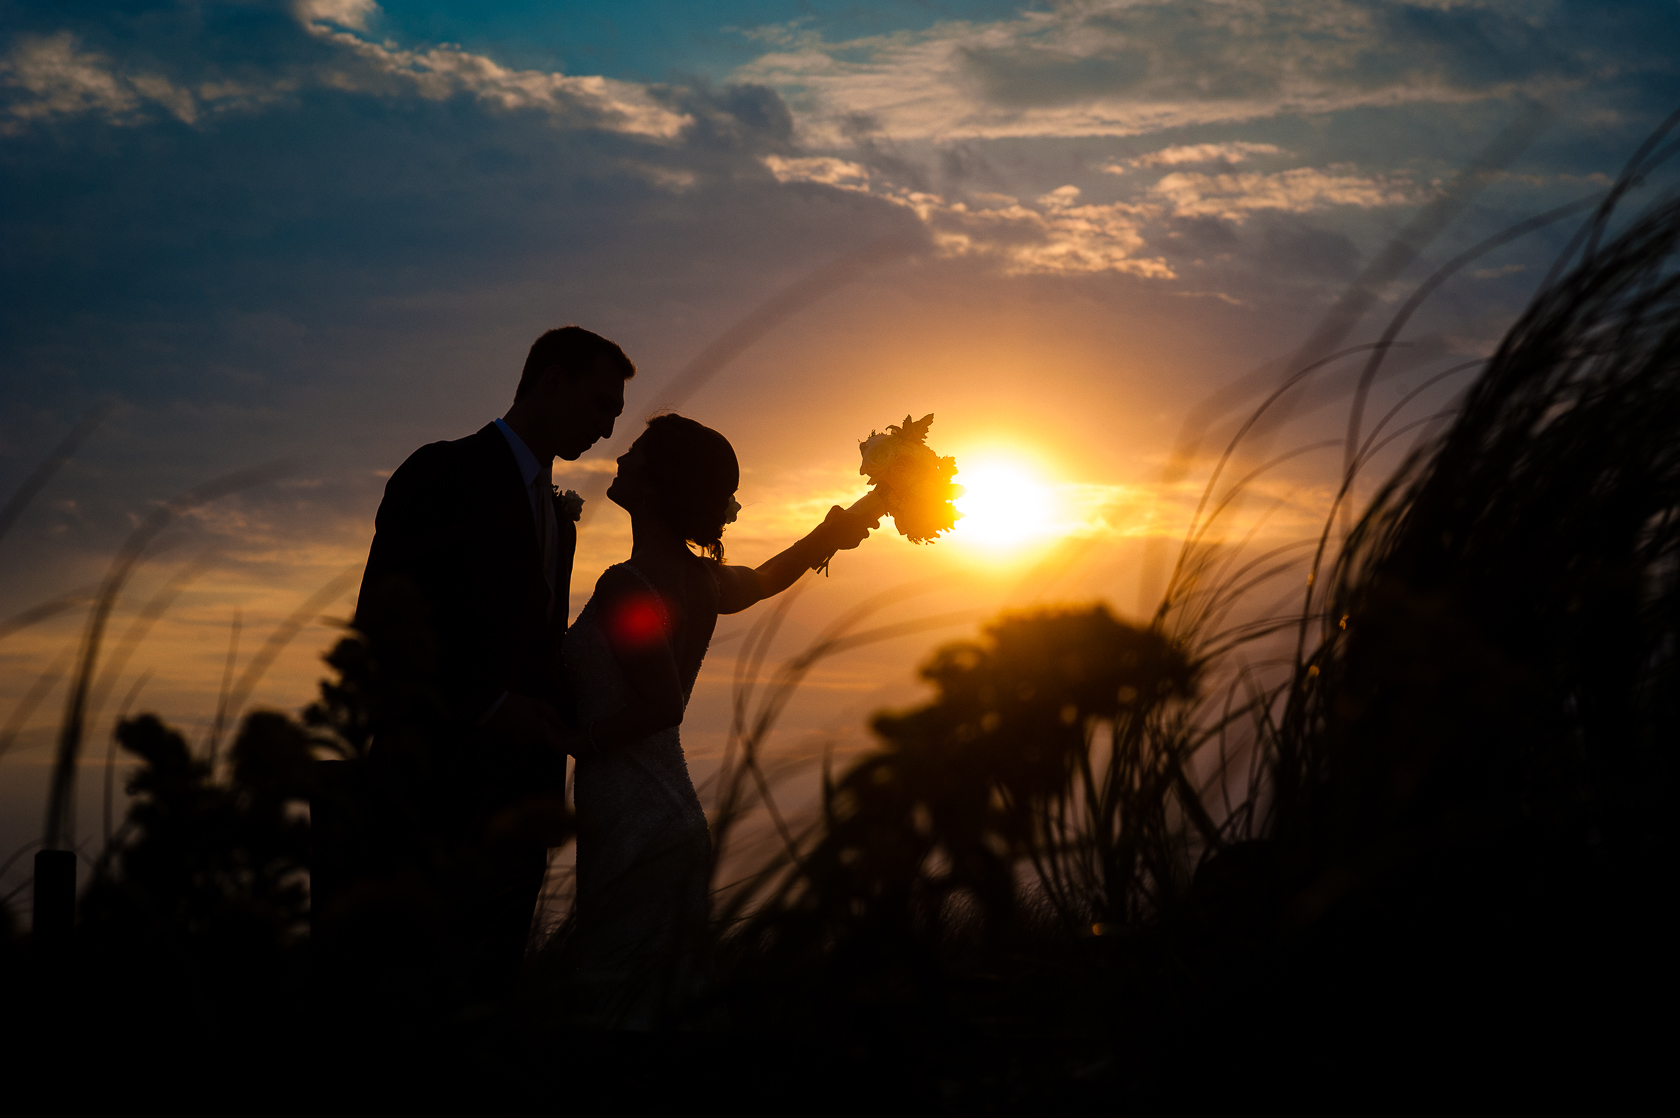 sunset silhouette of bride and groom in dune grass